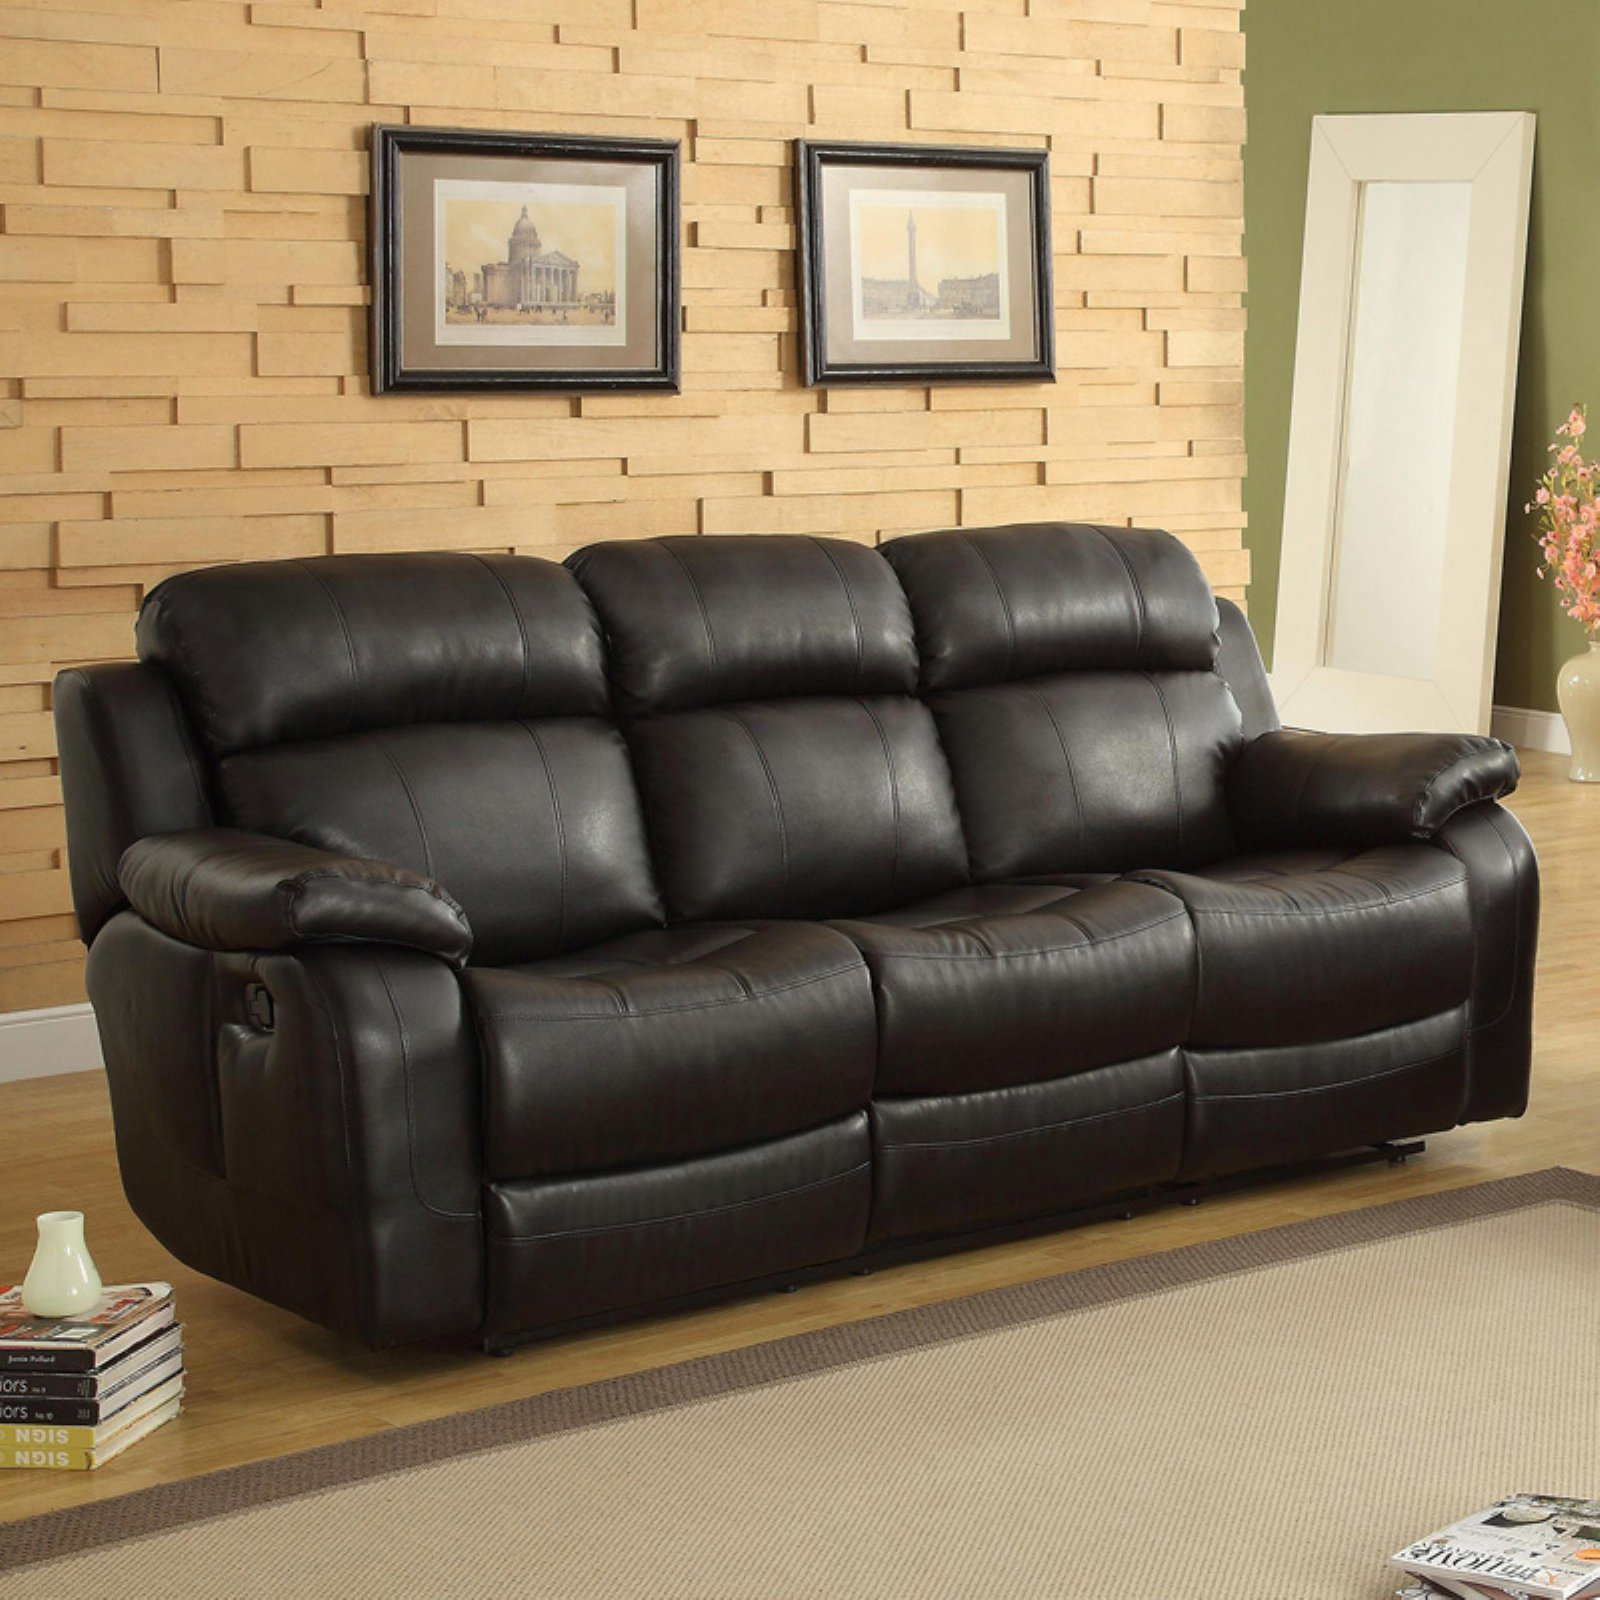 Weston Home Darrin Leather Reclining Sofa with Console - Black & Weston Home Darrin Leather Reclining Sofa with Console - Black ... islam-shia.org